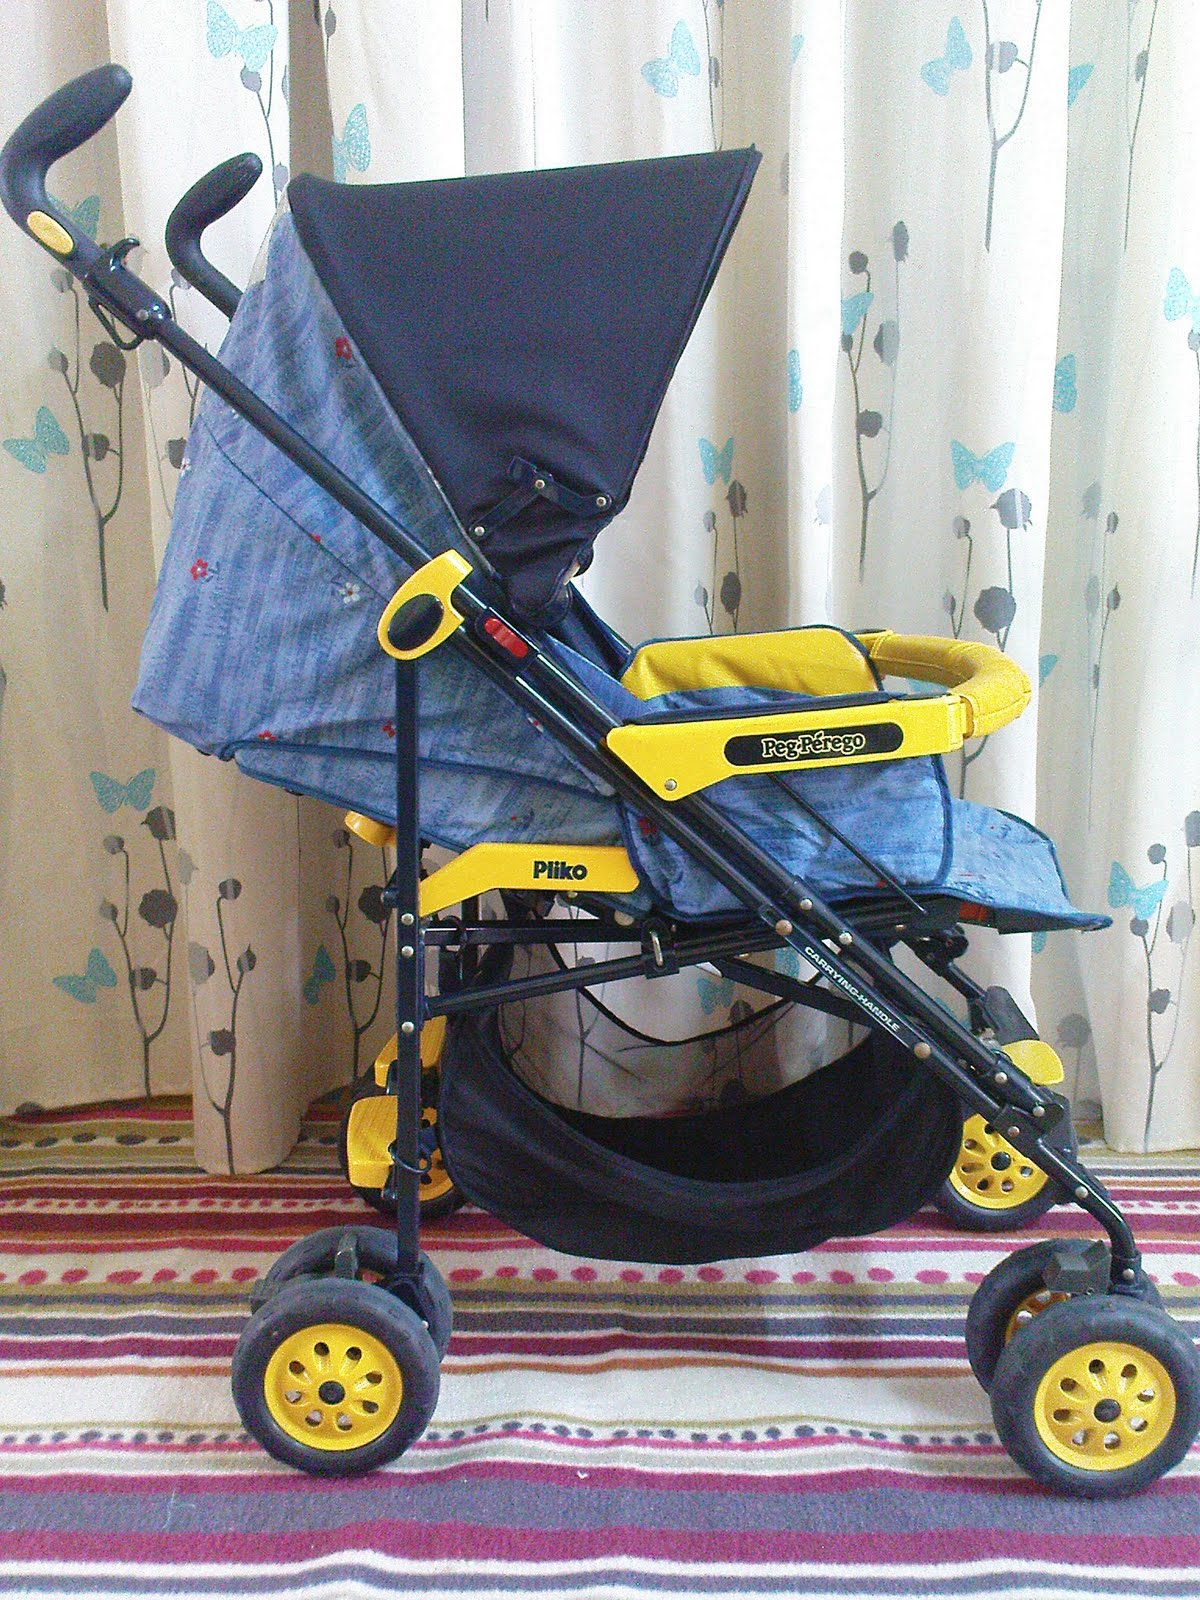 Peg Perego Pliko Matic Stroller Instructions Peg Perego Pliko Matic Stroller Instructions